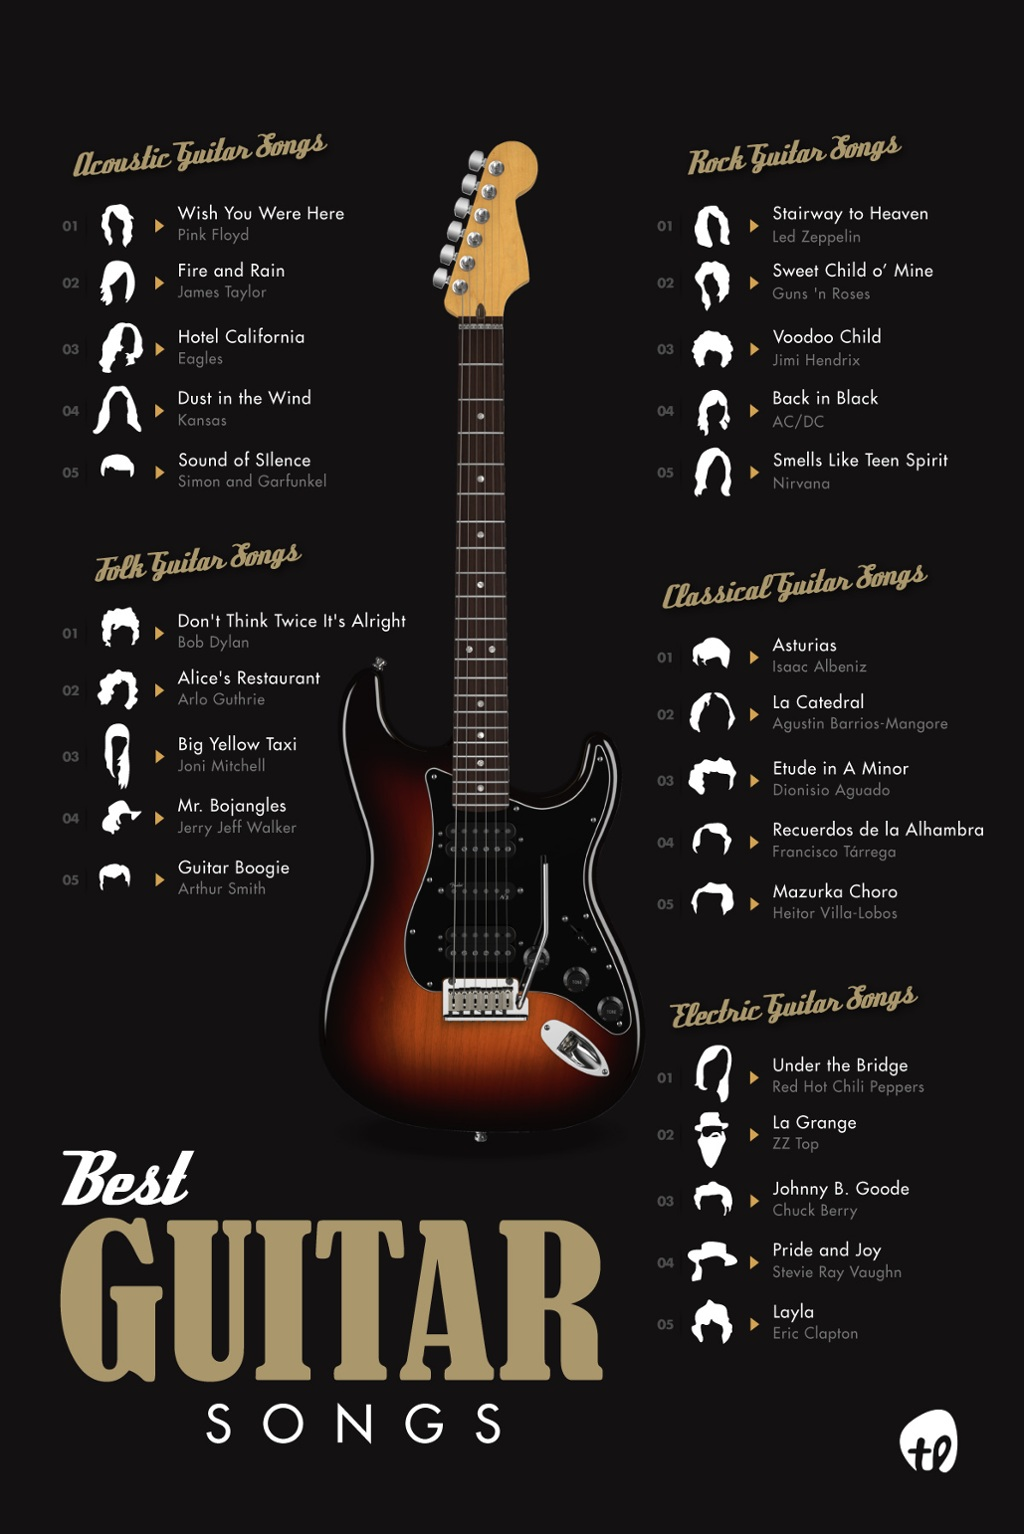 The 50 Best Guitar Songs Ever (From Different Eras & Genres